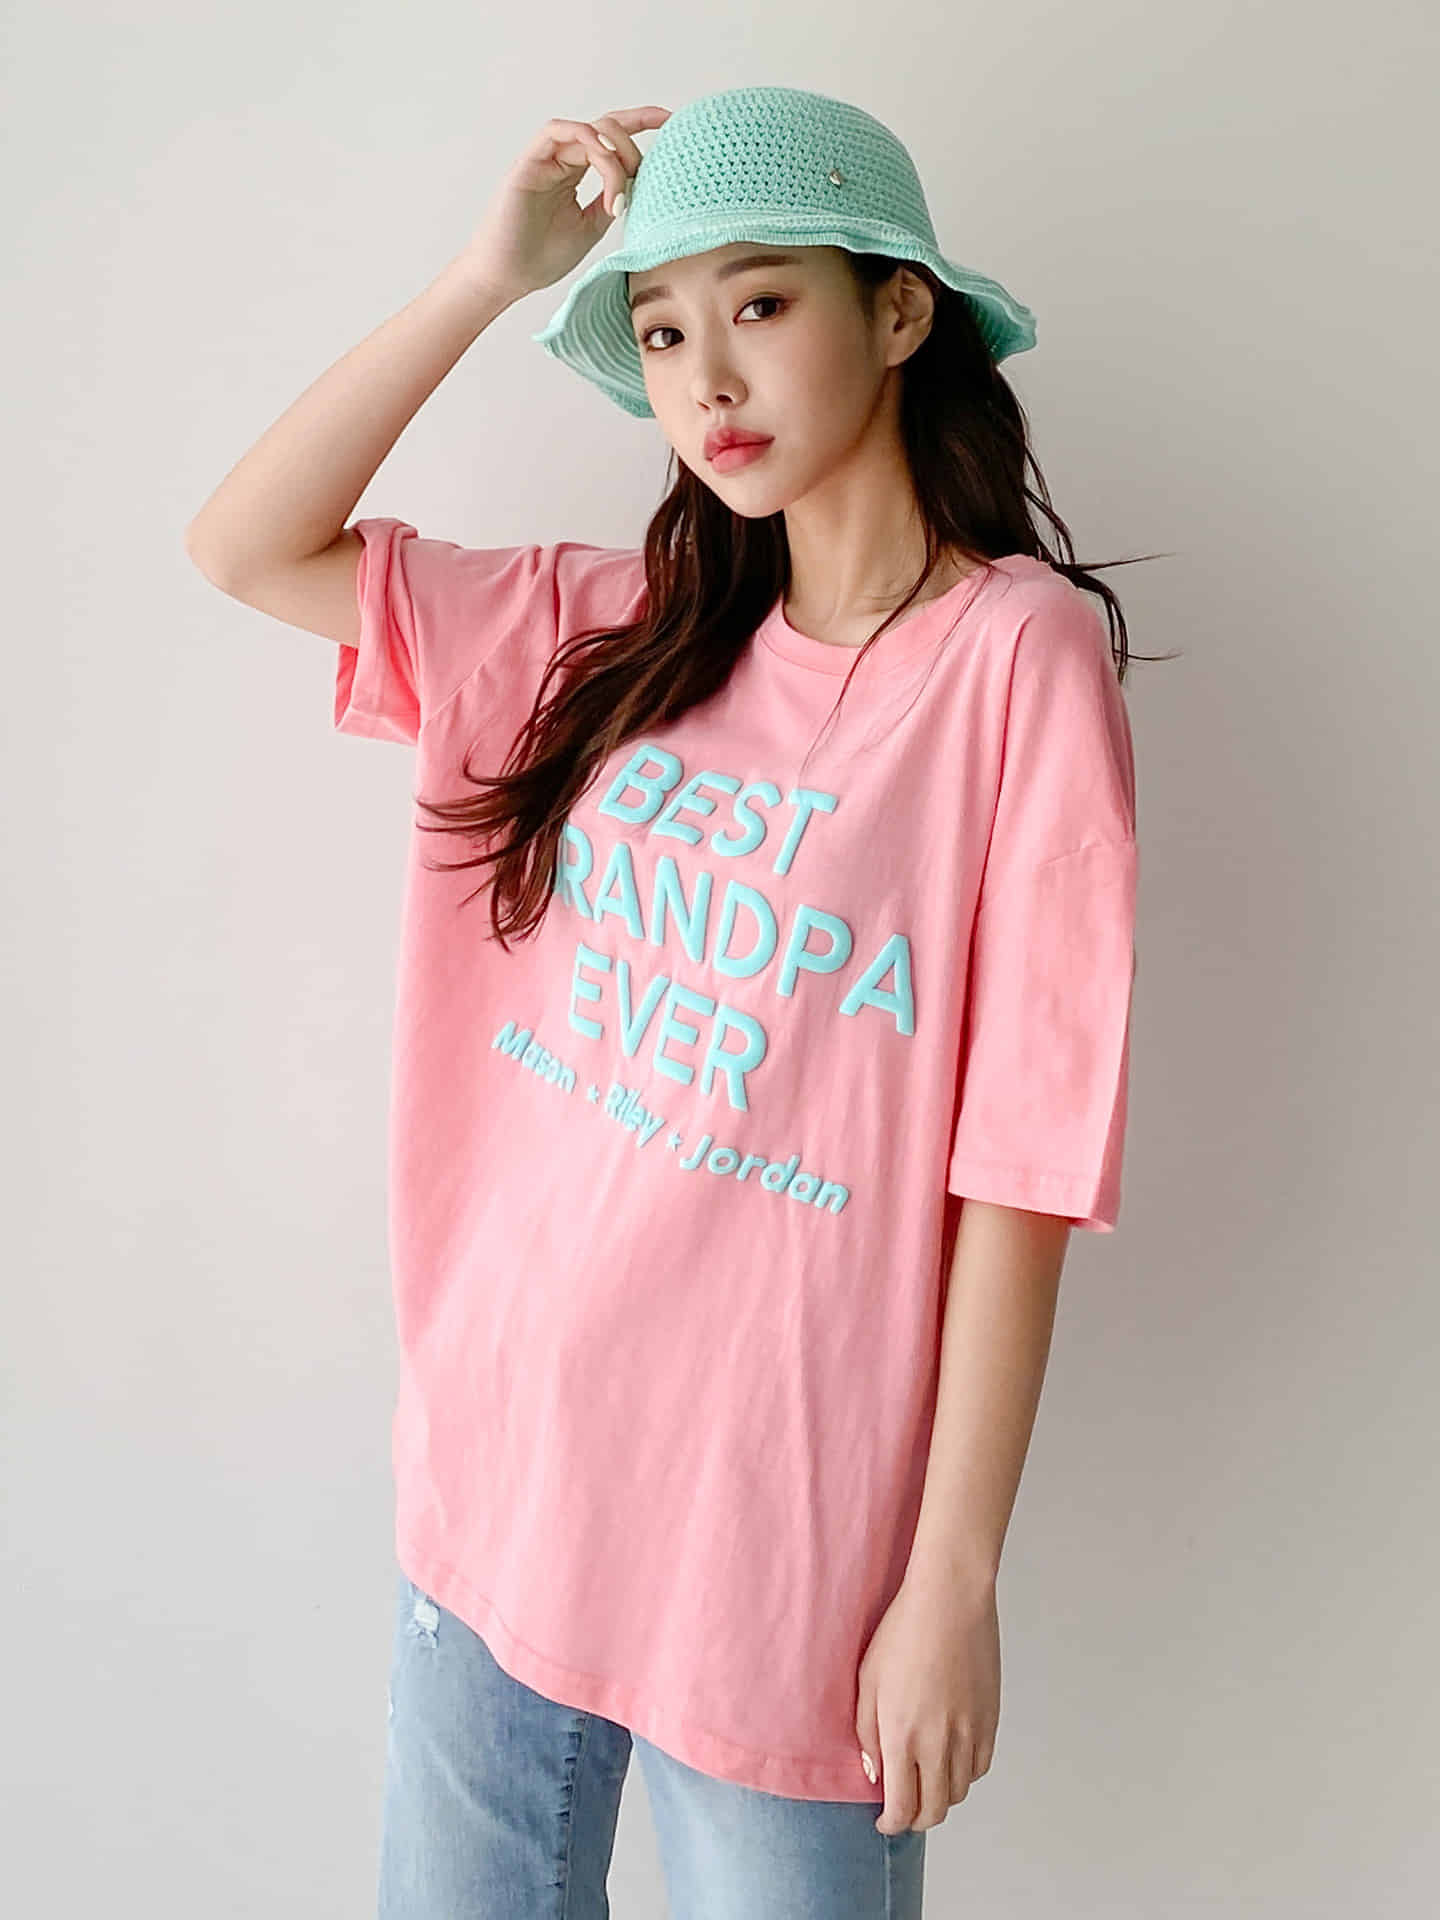 BEST RANDPA EVER T-shirt 韓国通販 PirikaCloset